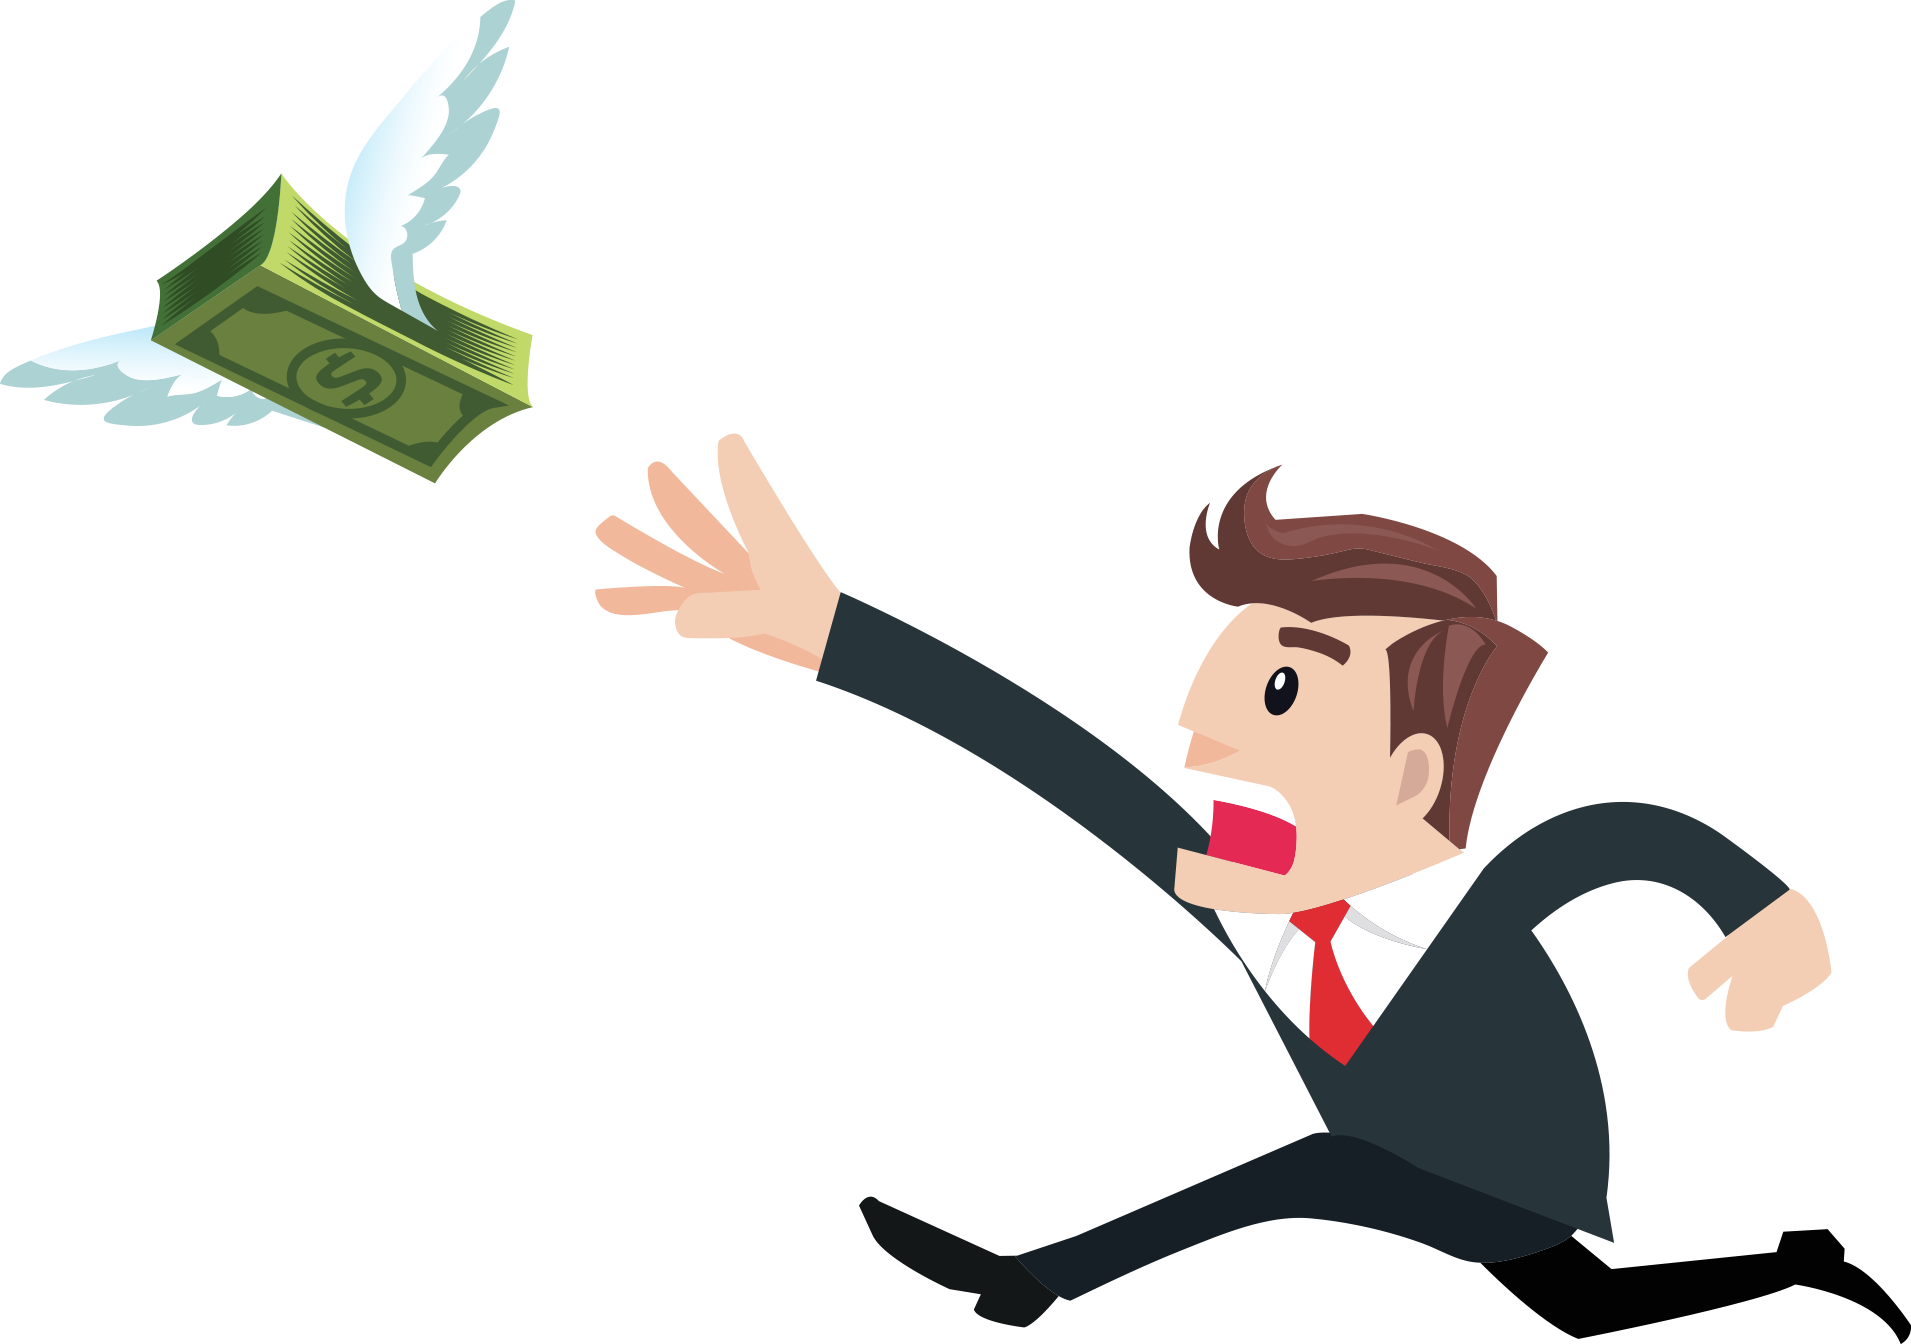 Money and personnel clipart business picture royalty free stock Money Google Images Search engine - Business man chasing money 1911 ... picture royalty free stock